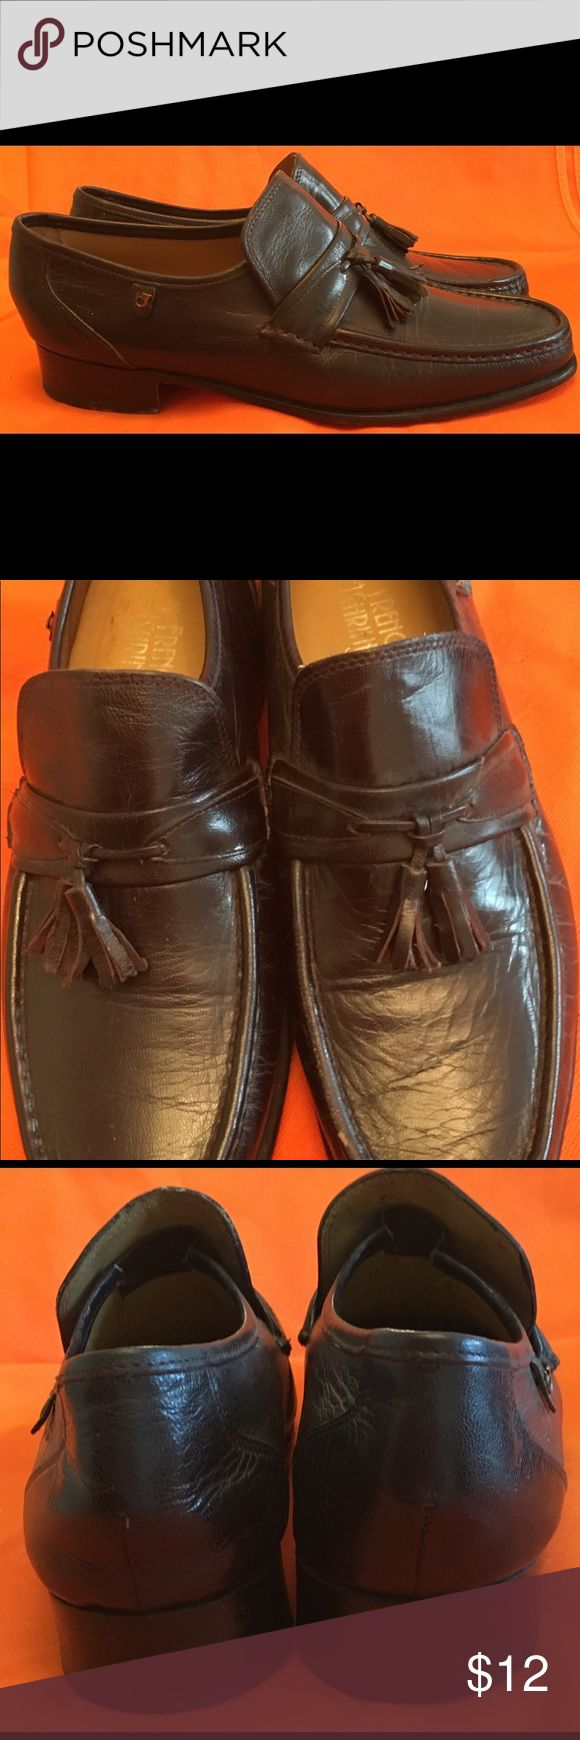 🔅FINAL SALE ✨Men's Dress Shoe ✨ Men's Dress Shoes Brand: French Shriner (with Tassle) Size: 11 Material: Leather Condition: Good, little piece of the black came off one shoe on top french shriner Shoes Loafers & Slip-Ons